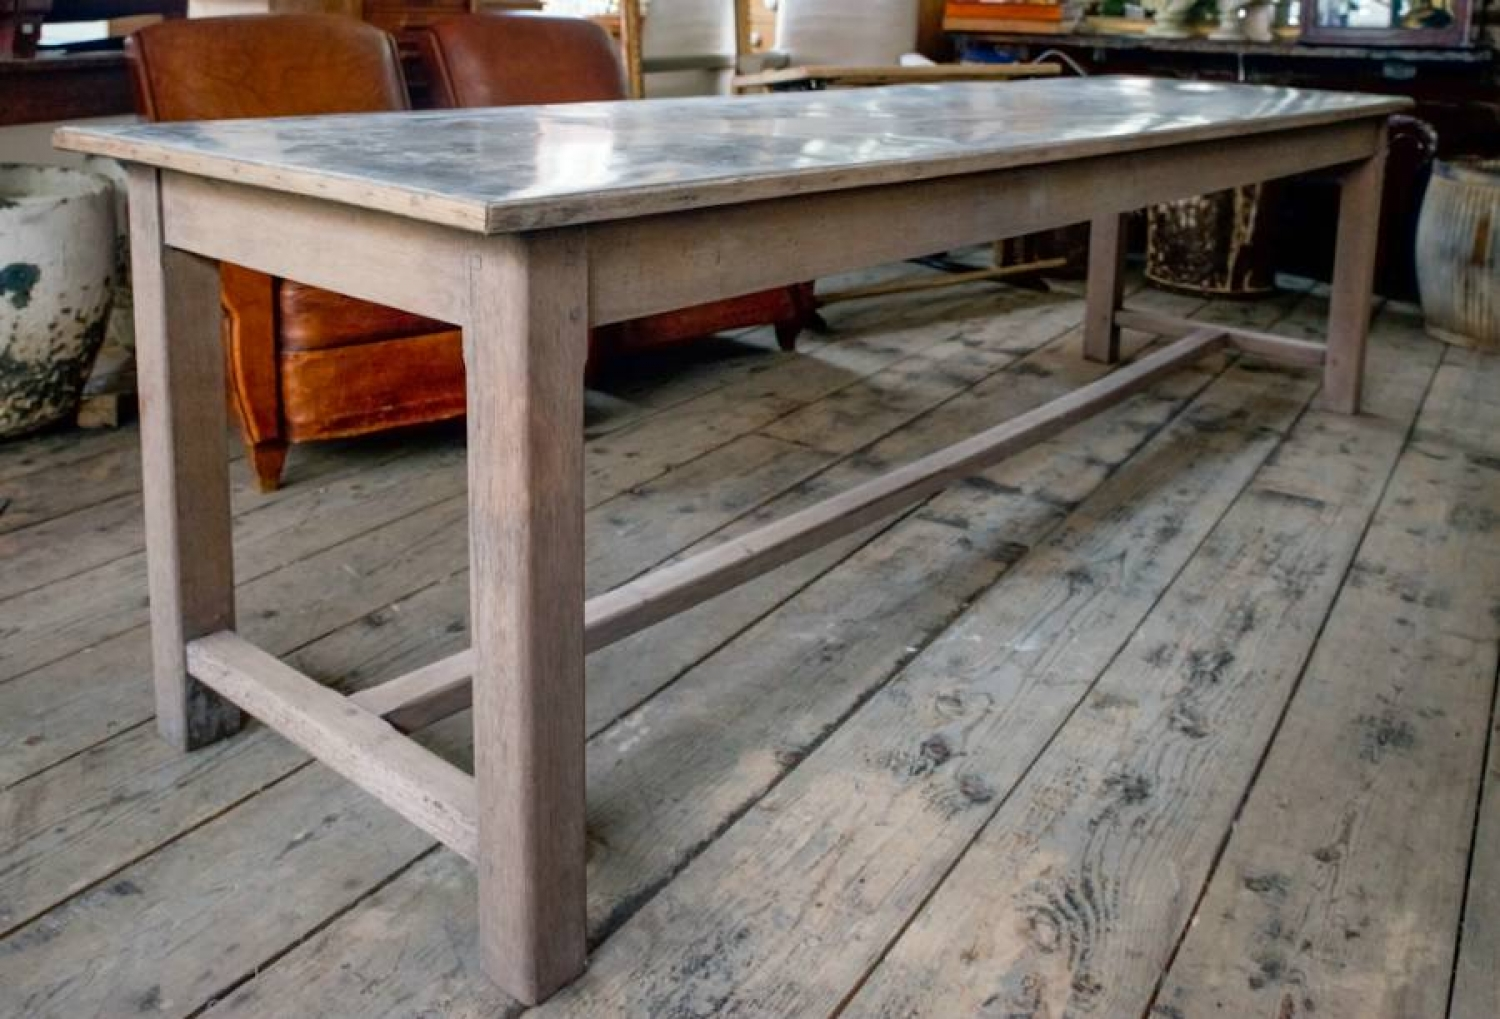 French Zinc topped Patisserie table